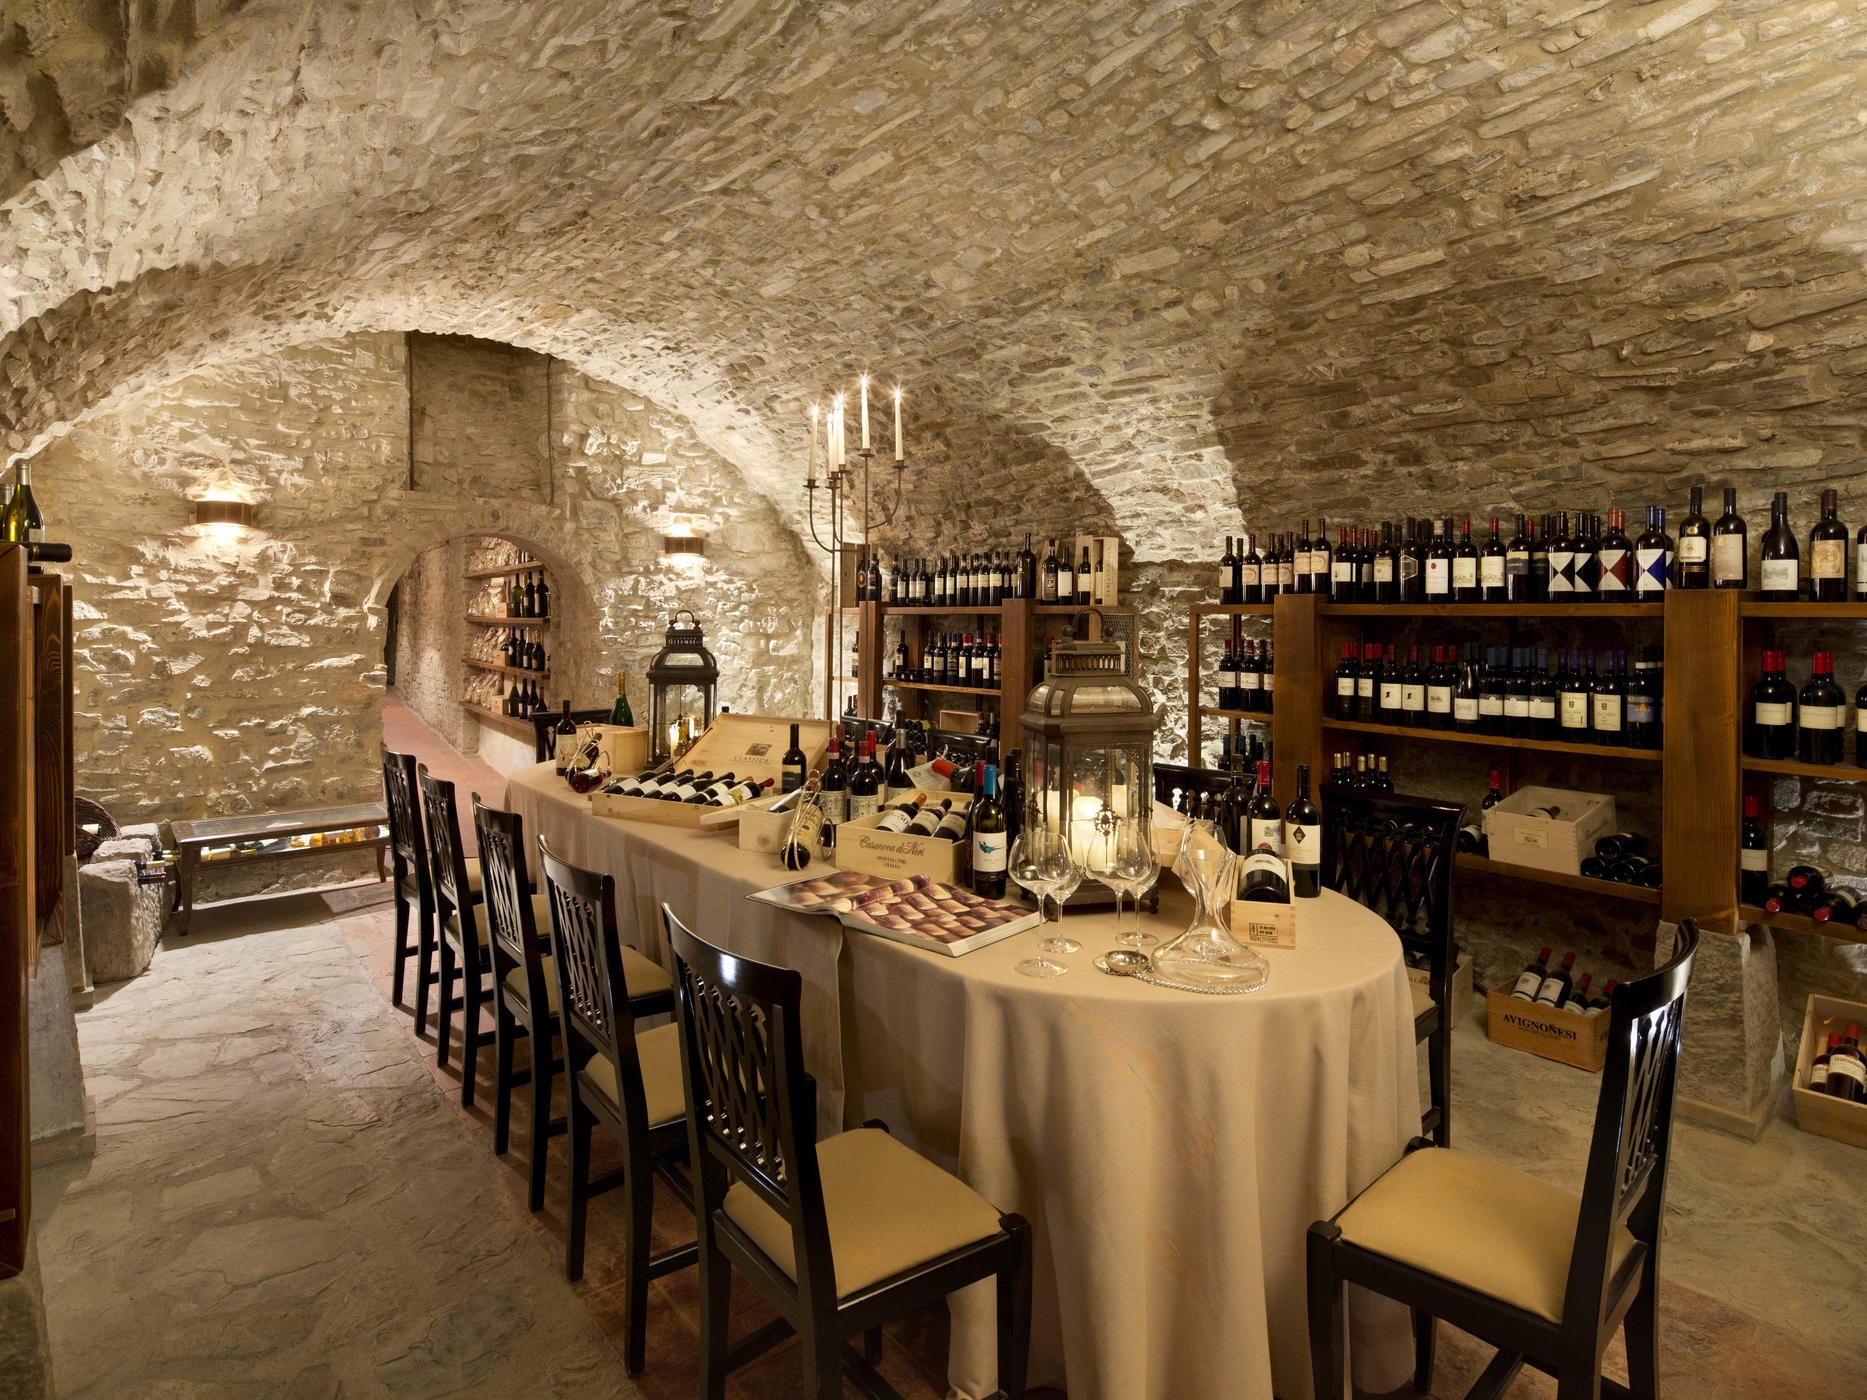 banquet table in wine cellar Unahotels Palazzo Mannaioni Toscana